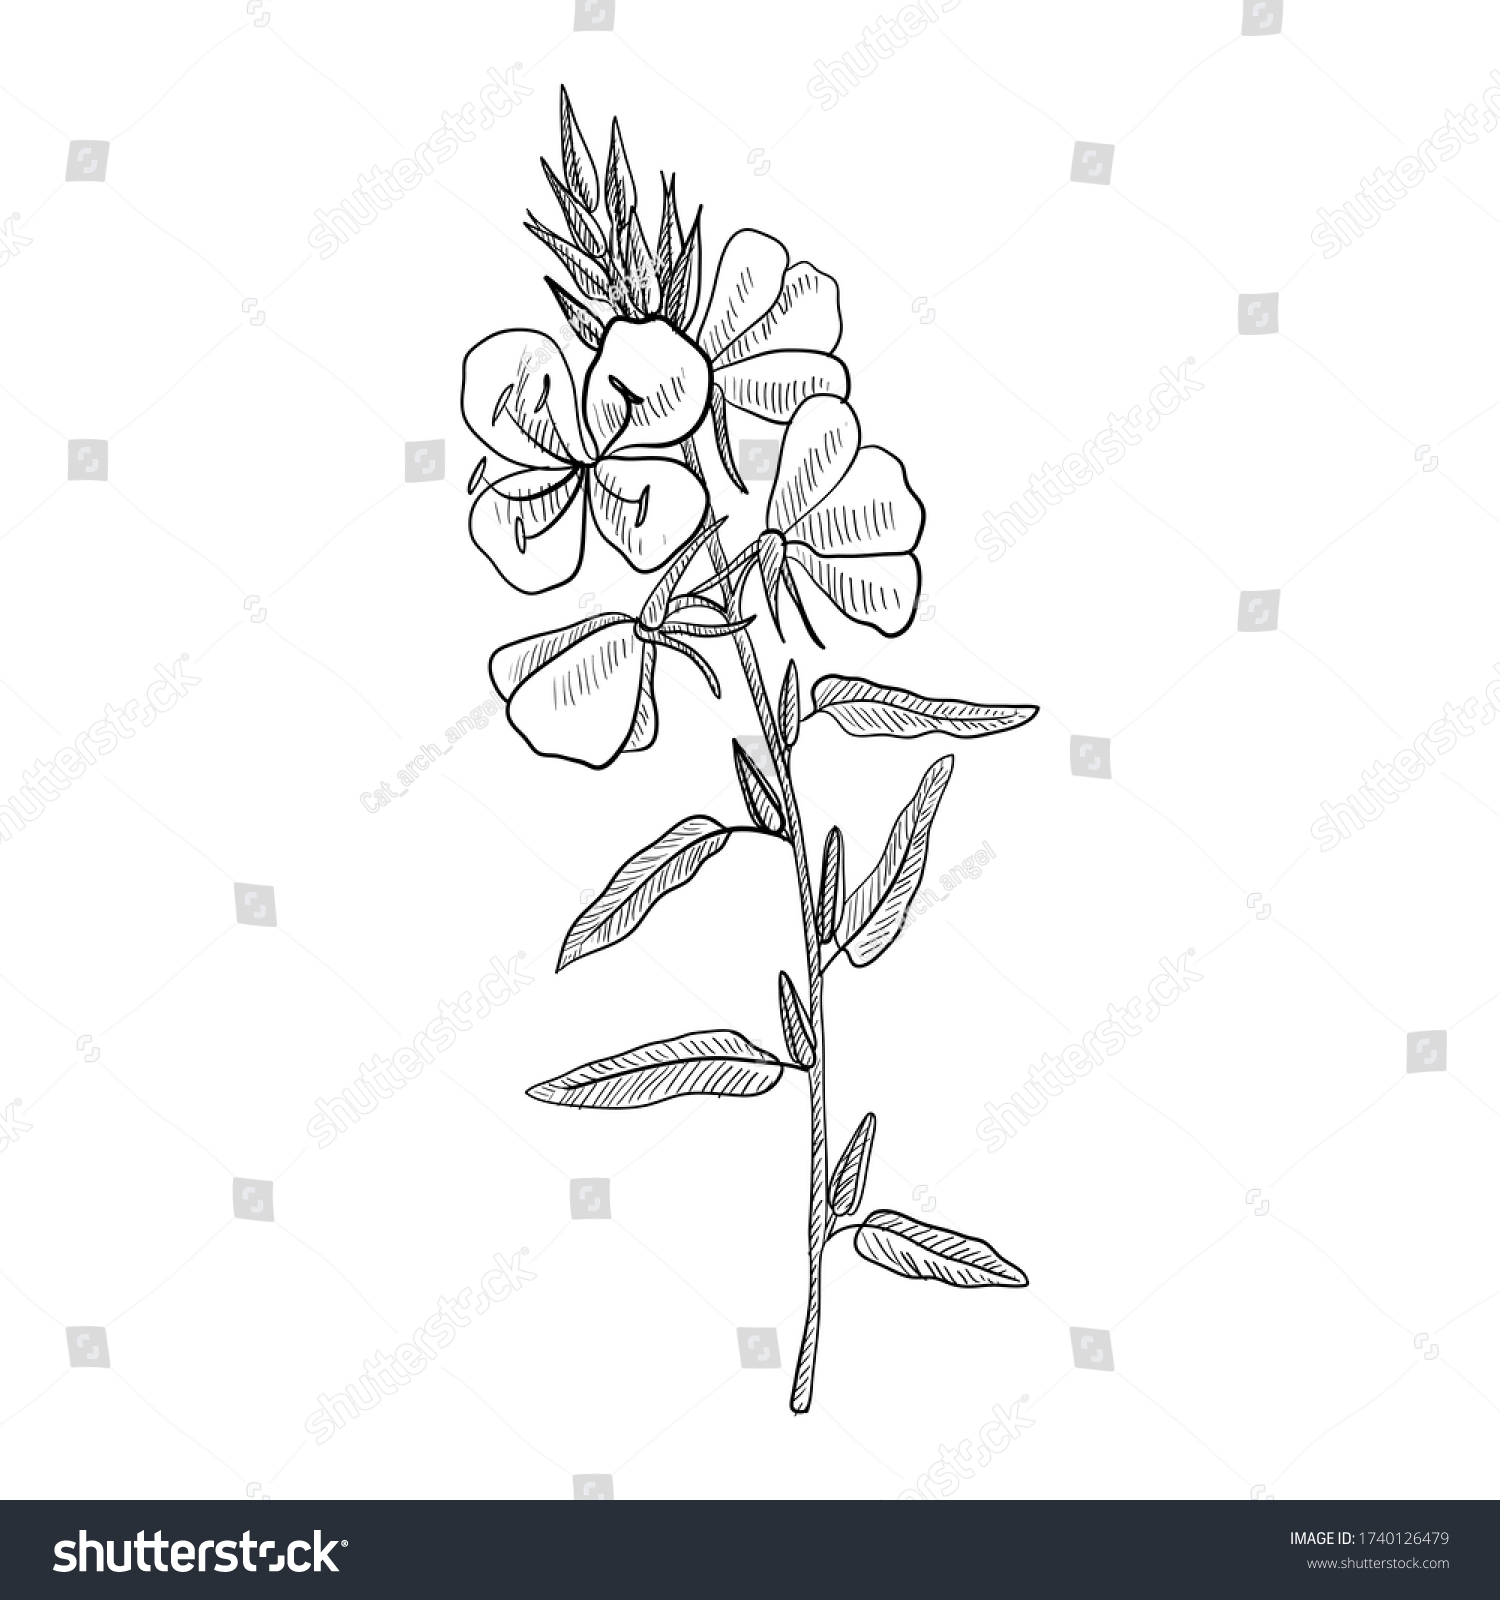 vector drawing evening primrose flower ,Oenothera , hand drawn illustration #1740126479